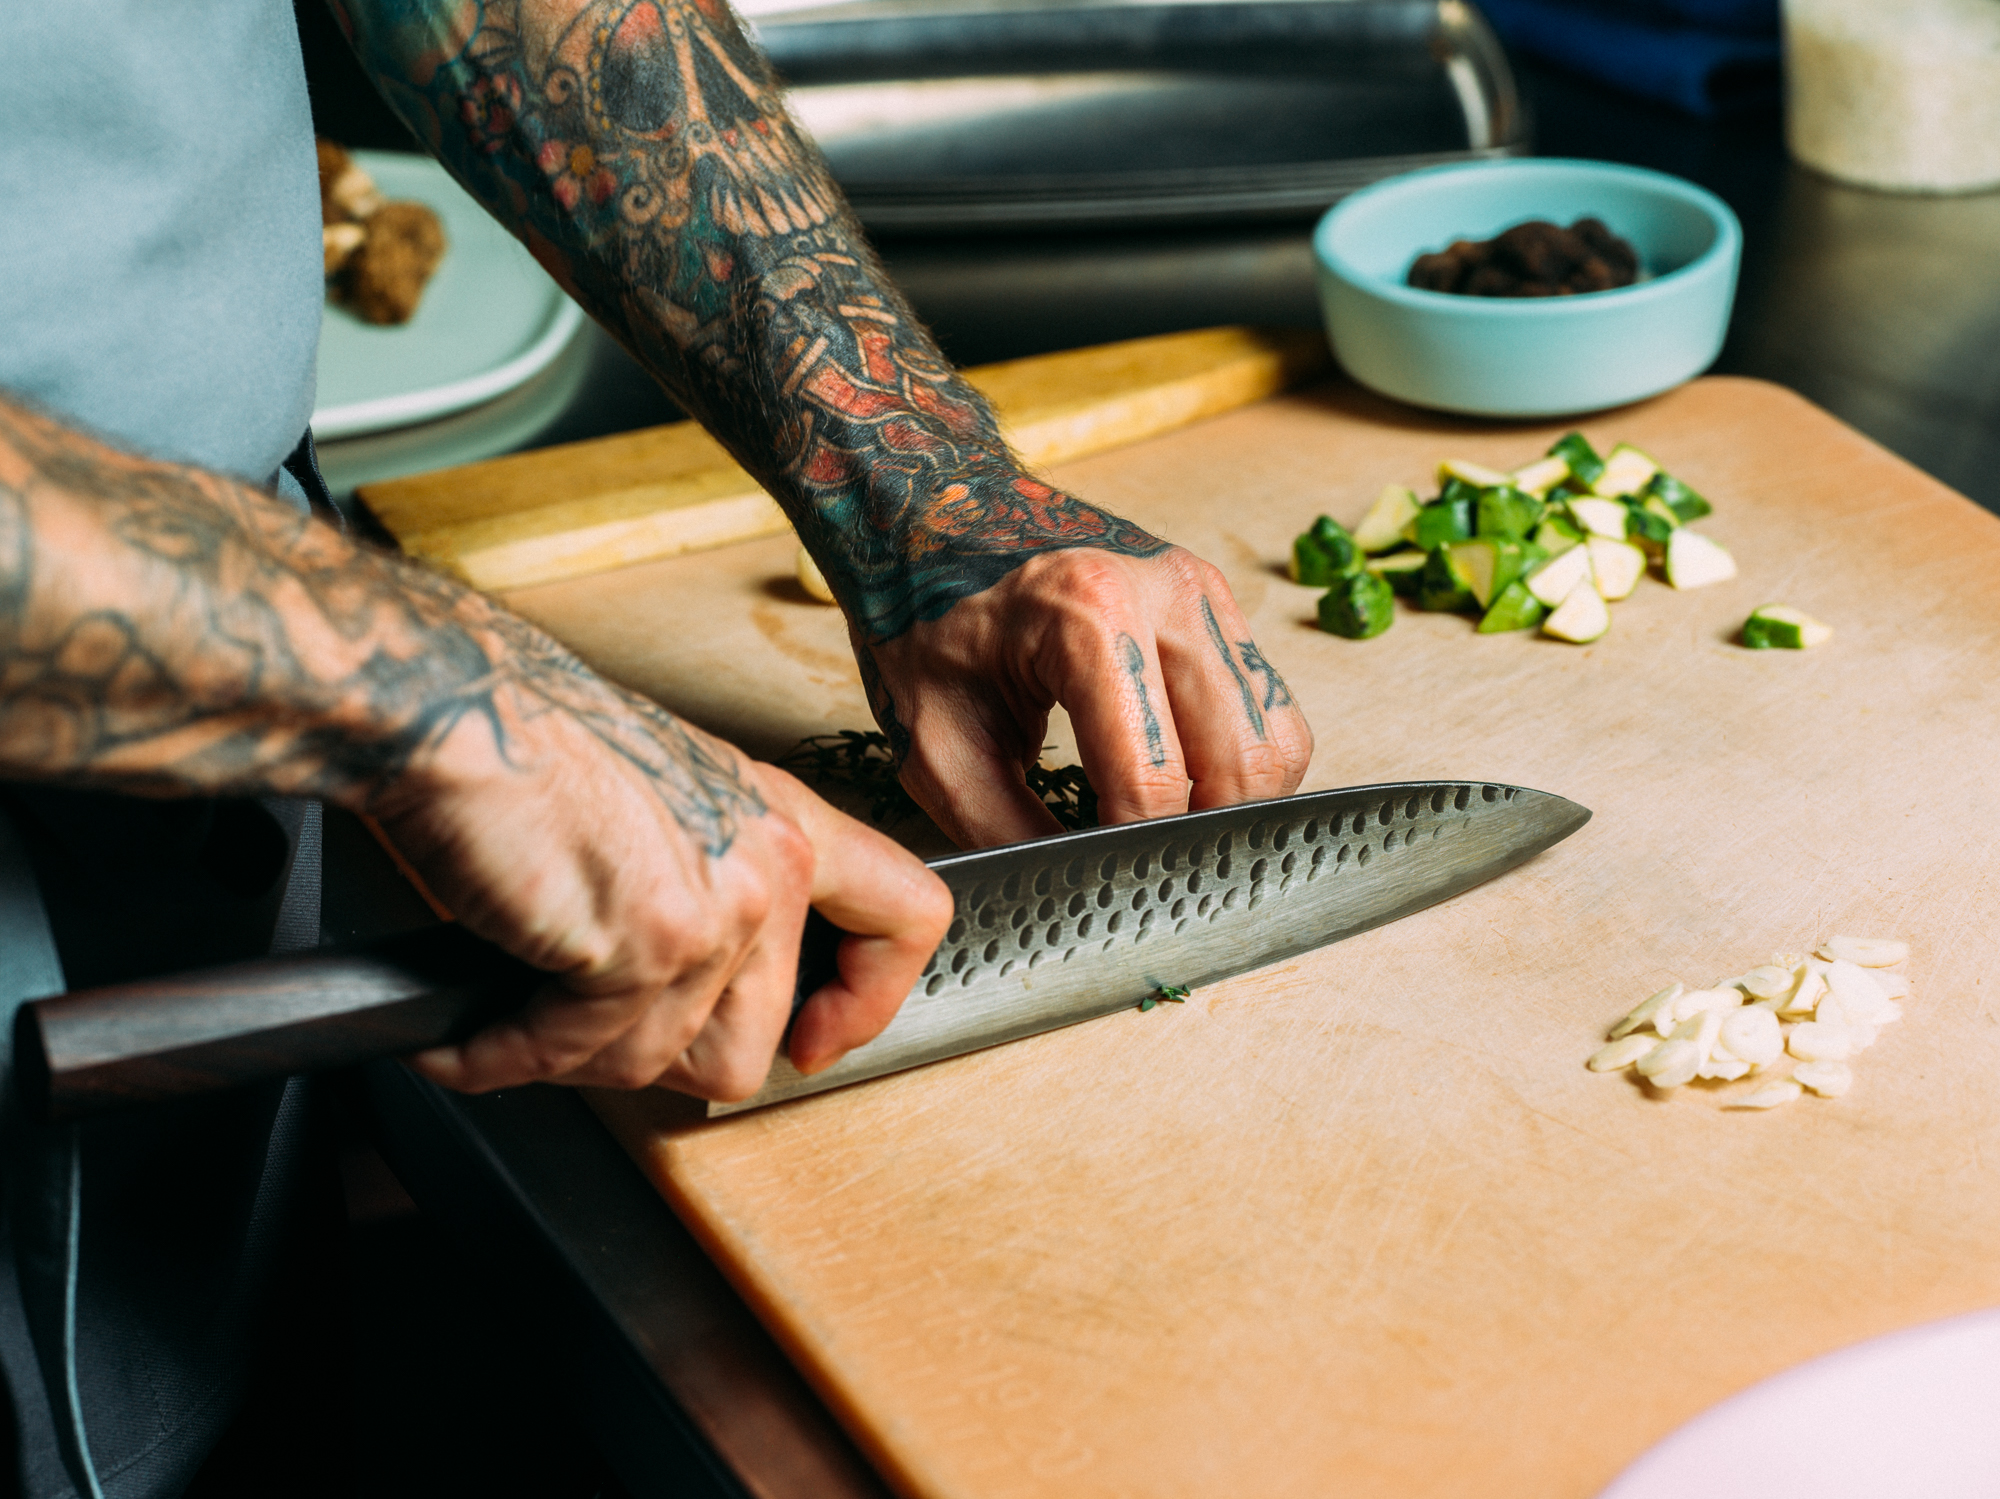 Tattooed arms holding a knife, slicing food ingredients on a cutting board.